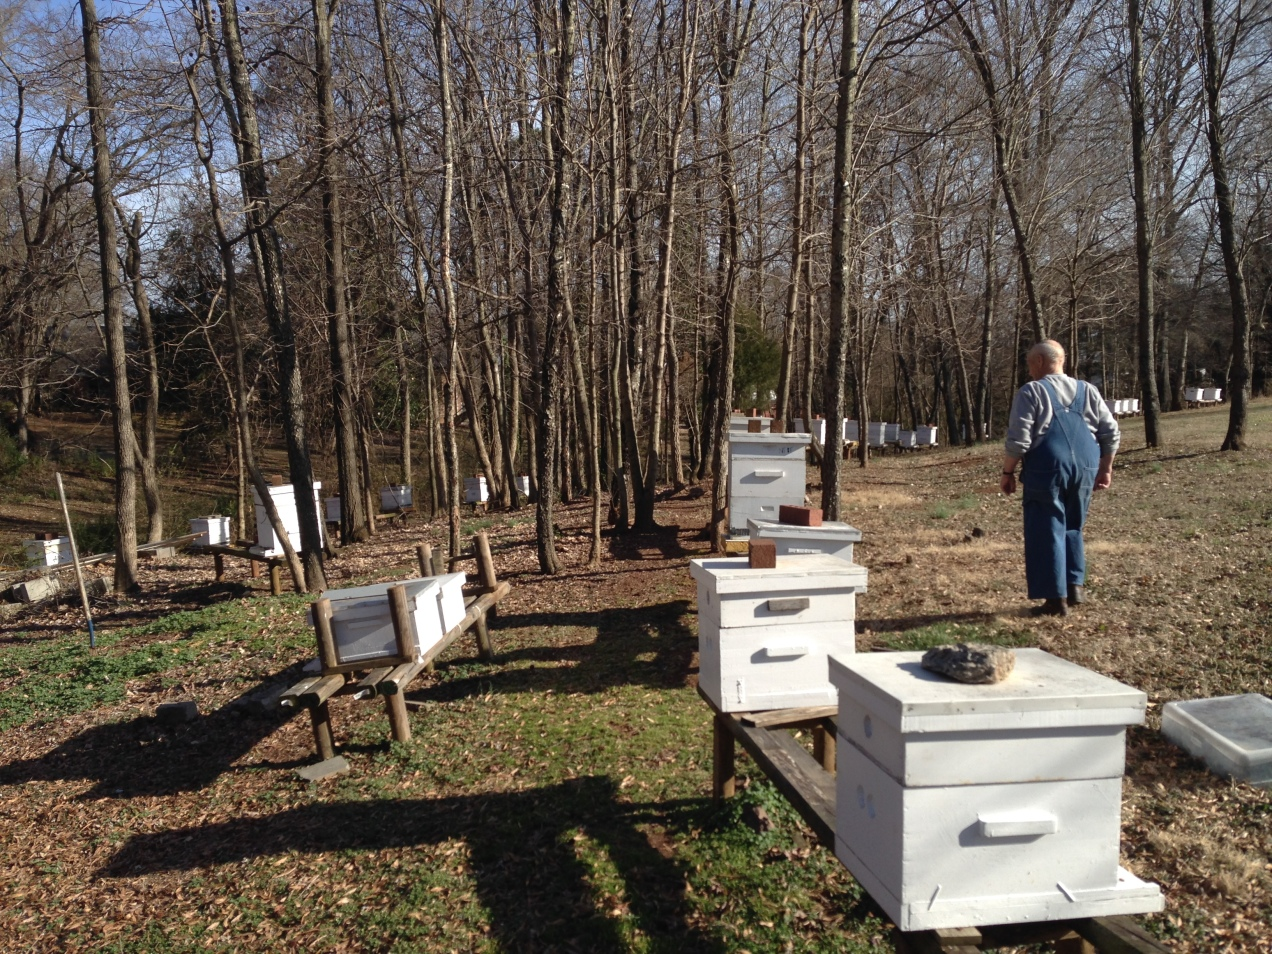 St. Dominic's Bee Farm